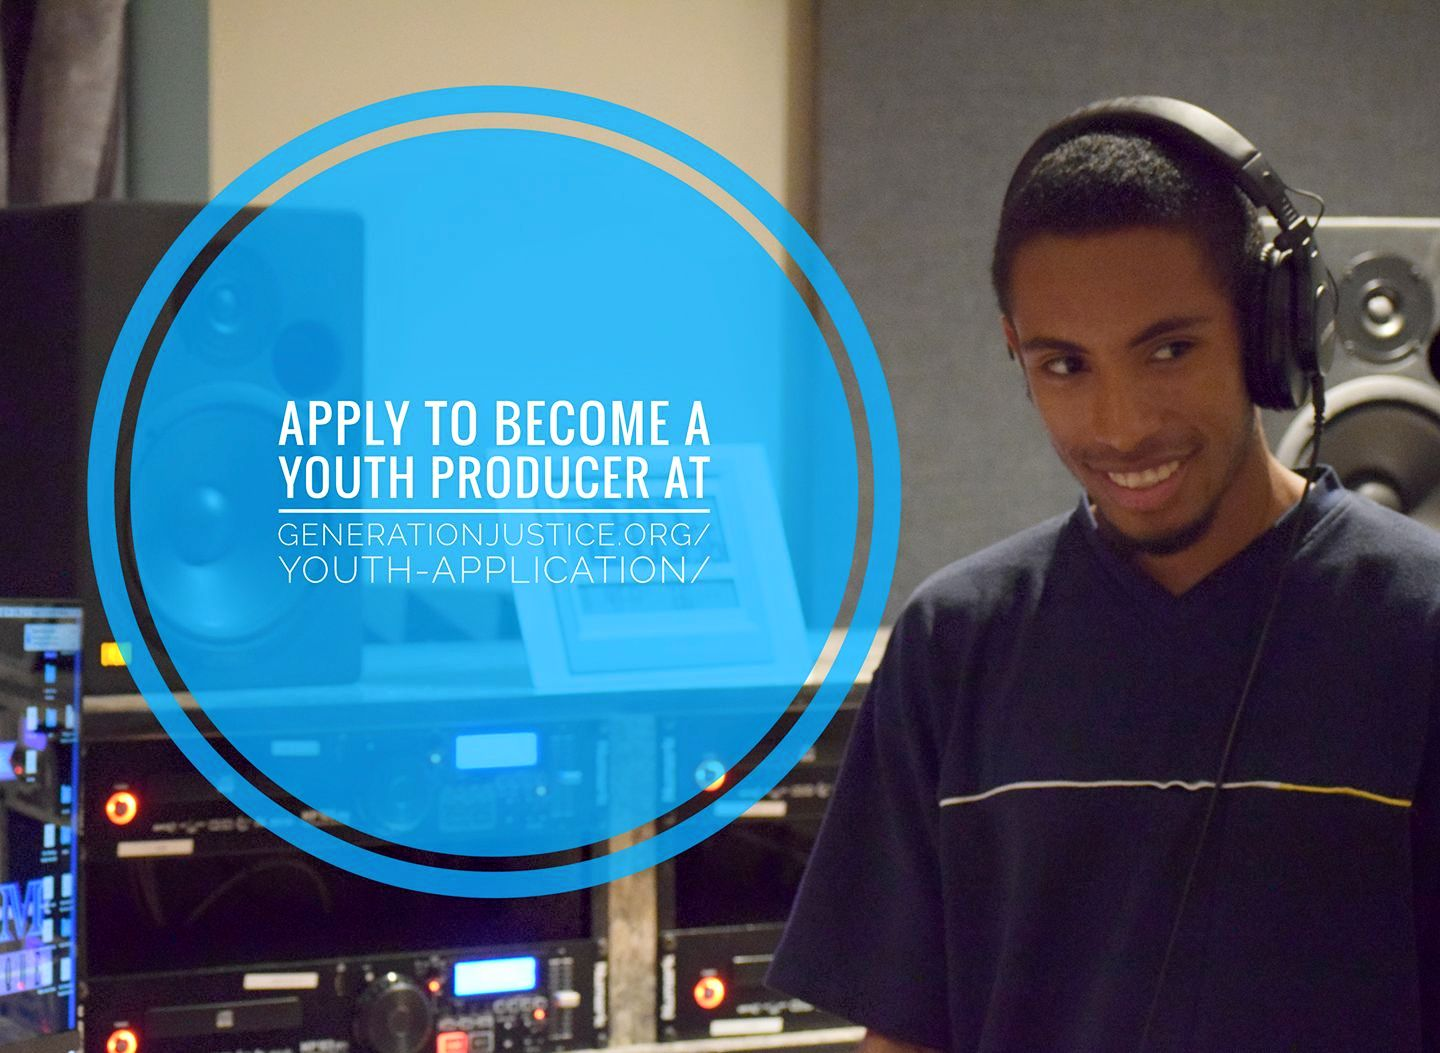 youth producer